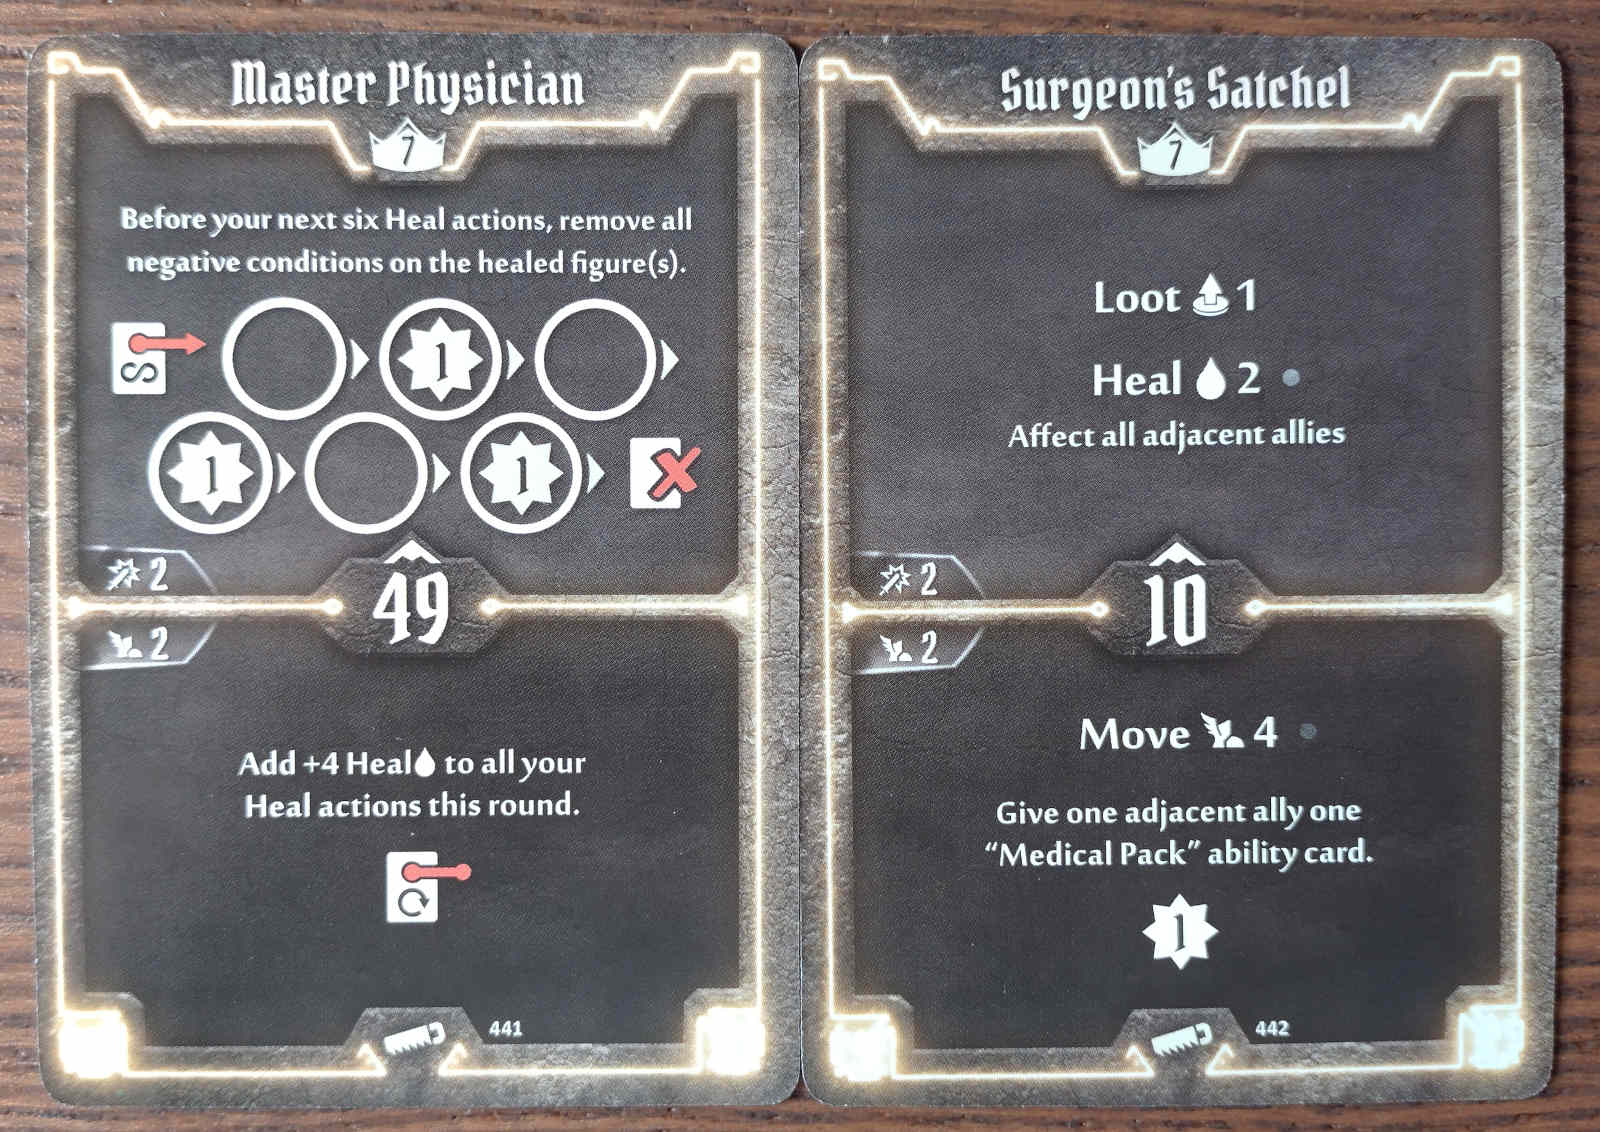 Level 7 Sawbones cards - Master Physician and Surgeon's Satchel